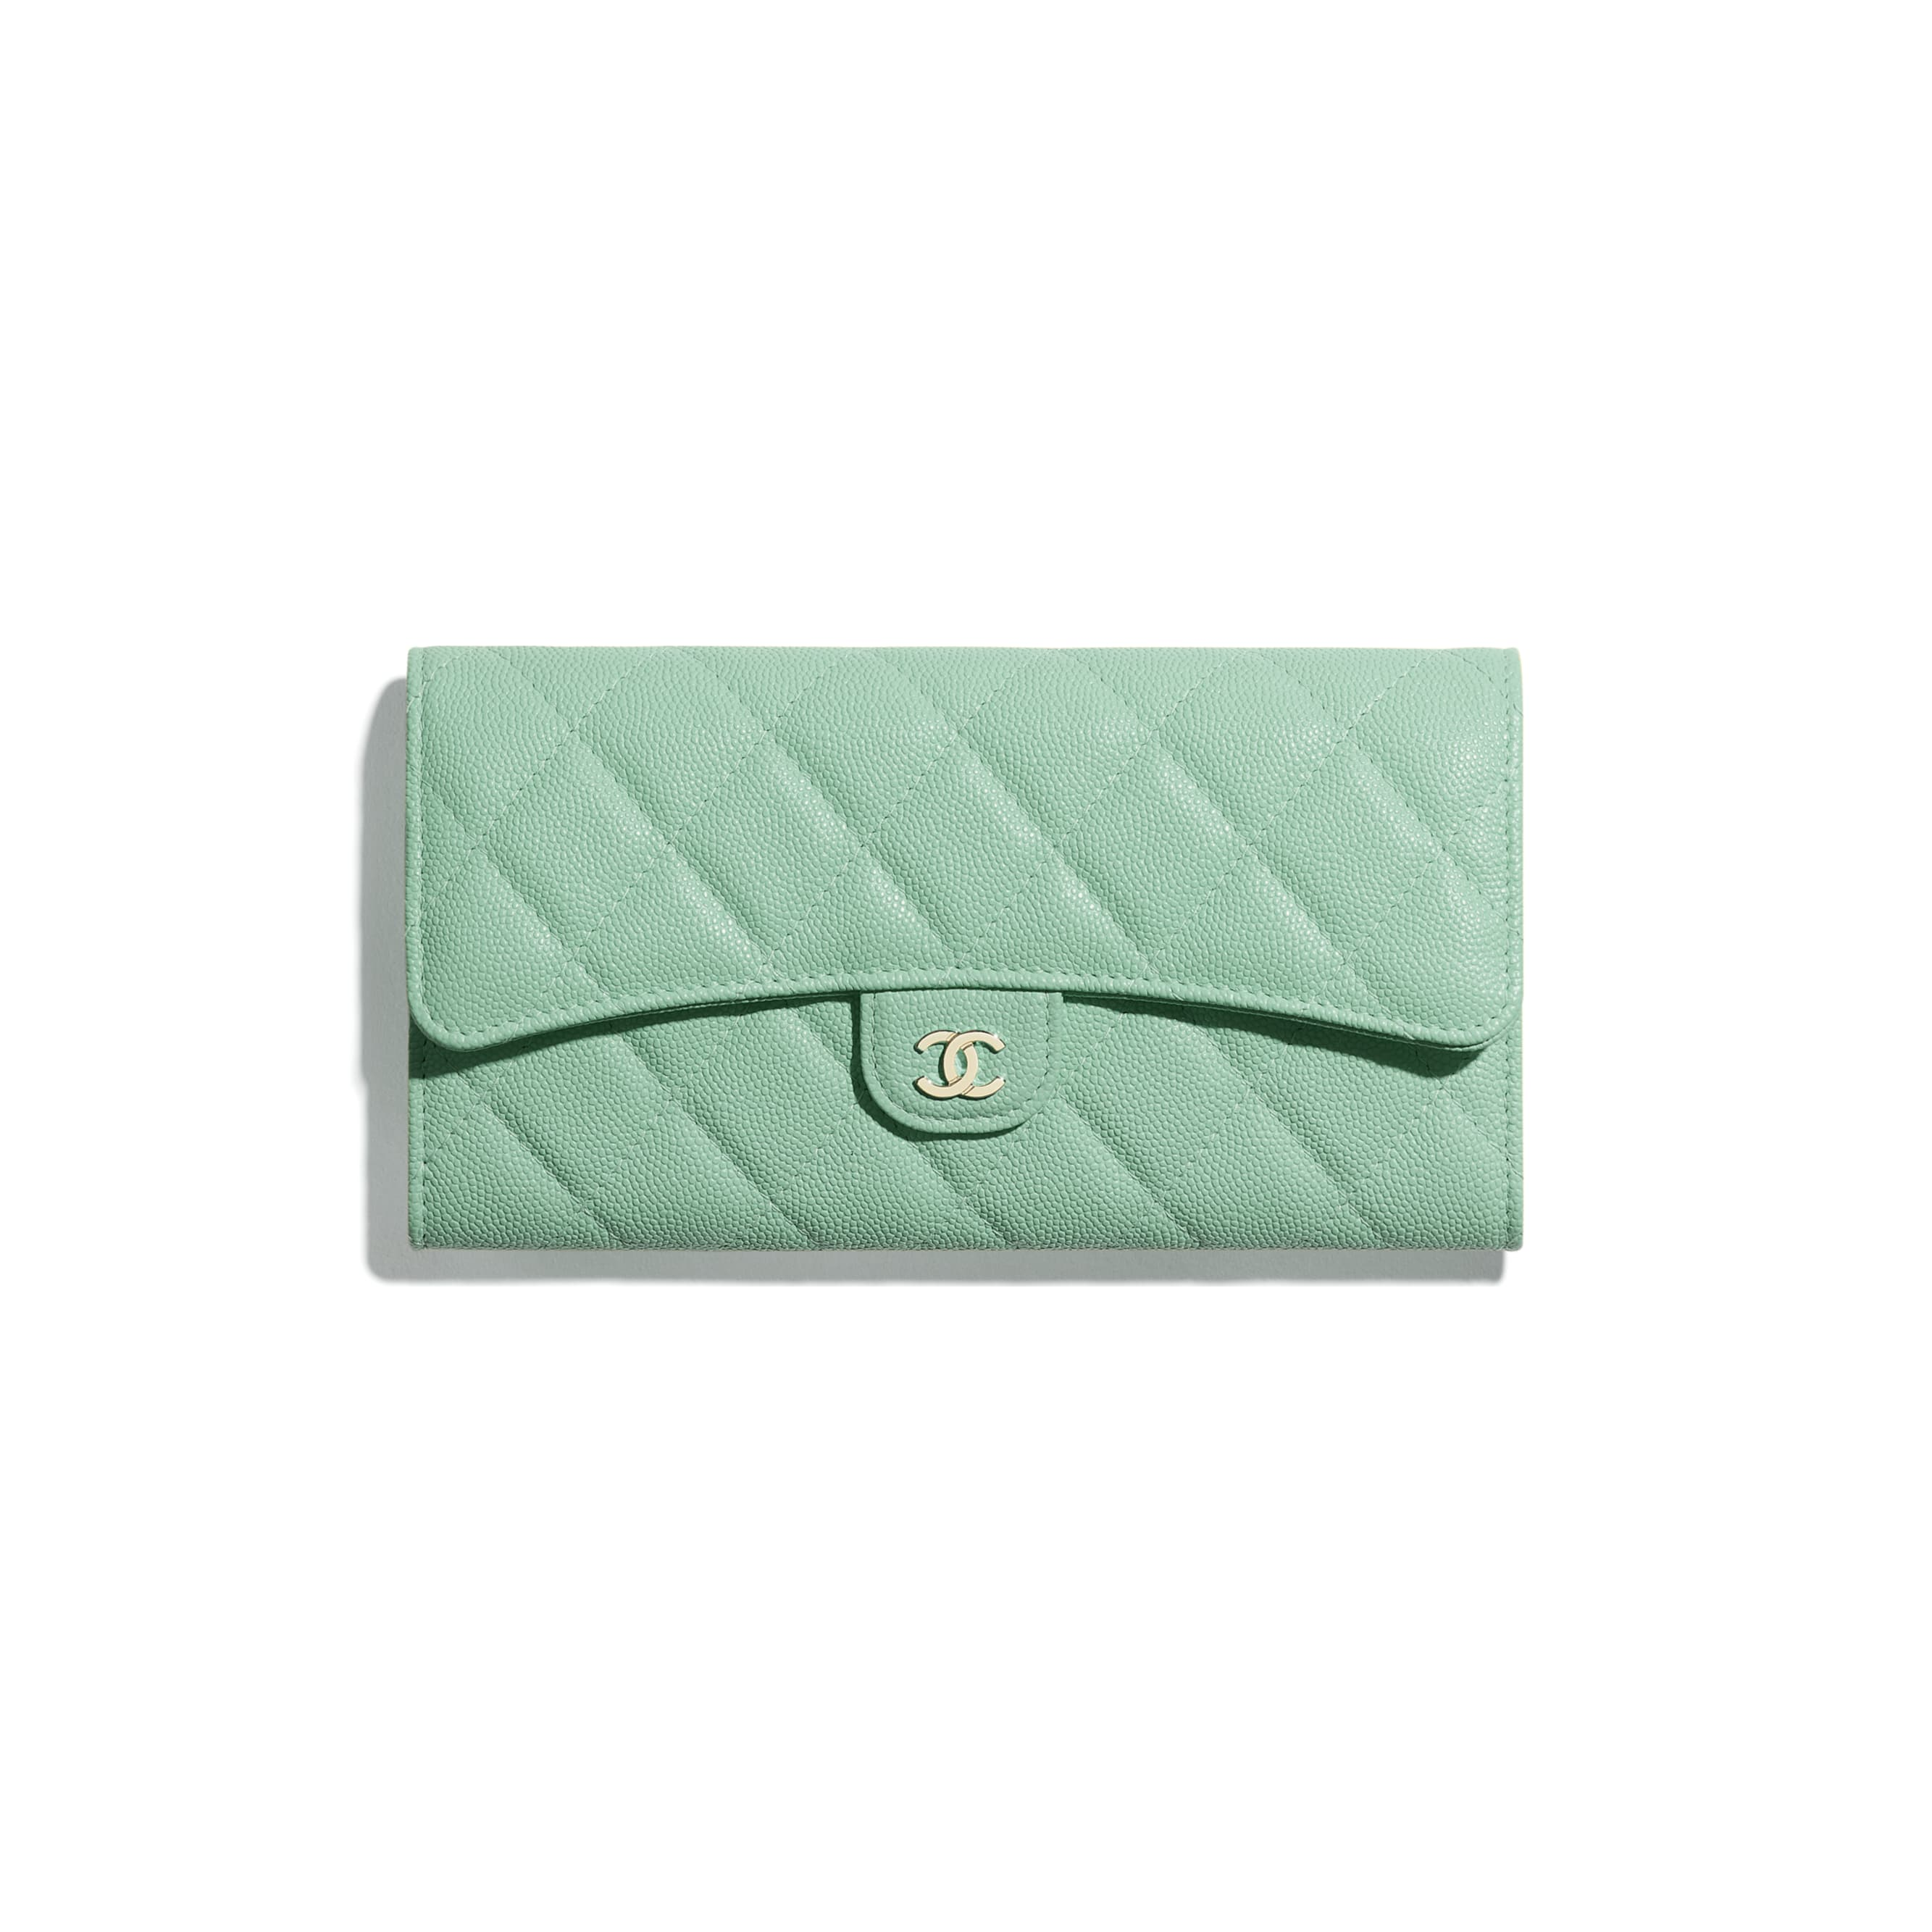 Classic Long Flap Wallet - Green - Grained Calfskin & Gold-Tone Metal - CHANEL - Default view - see standard sized version